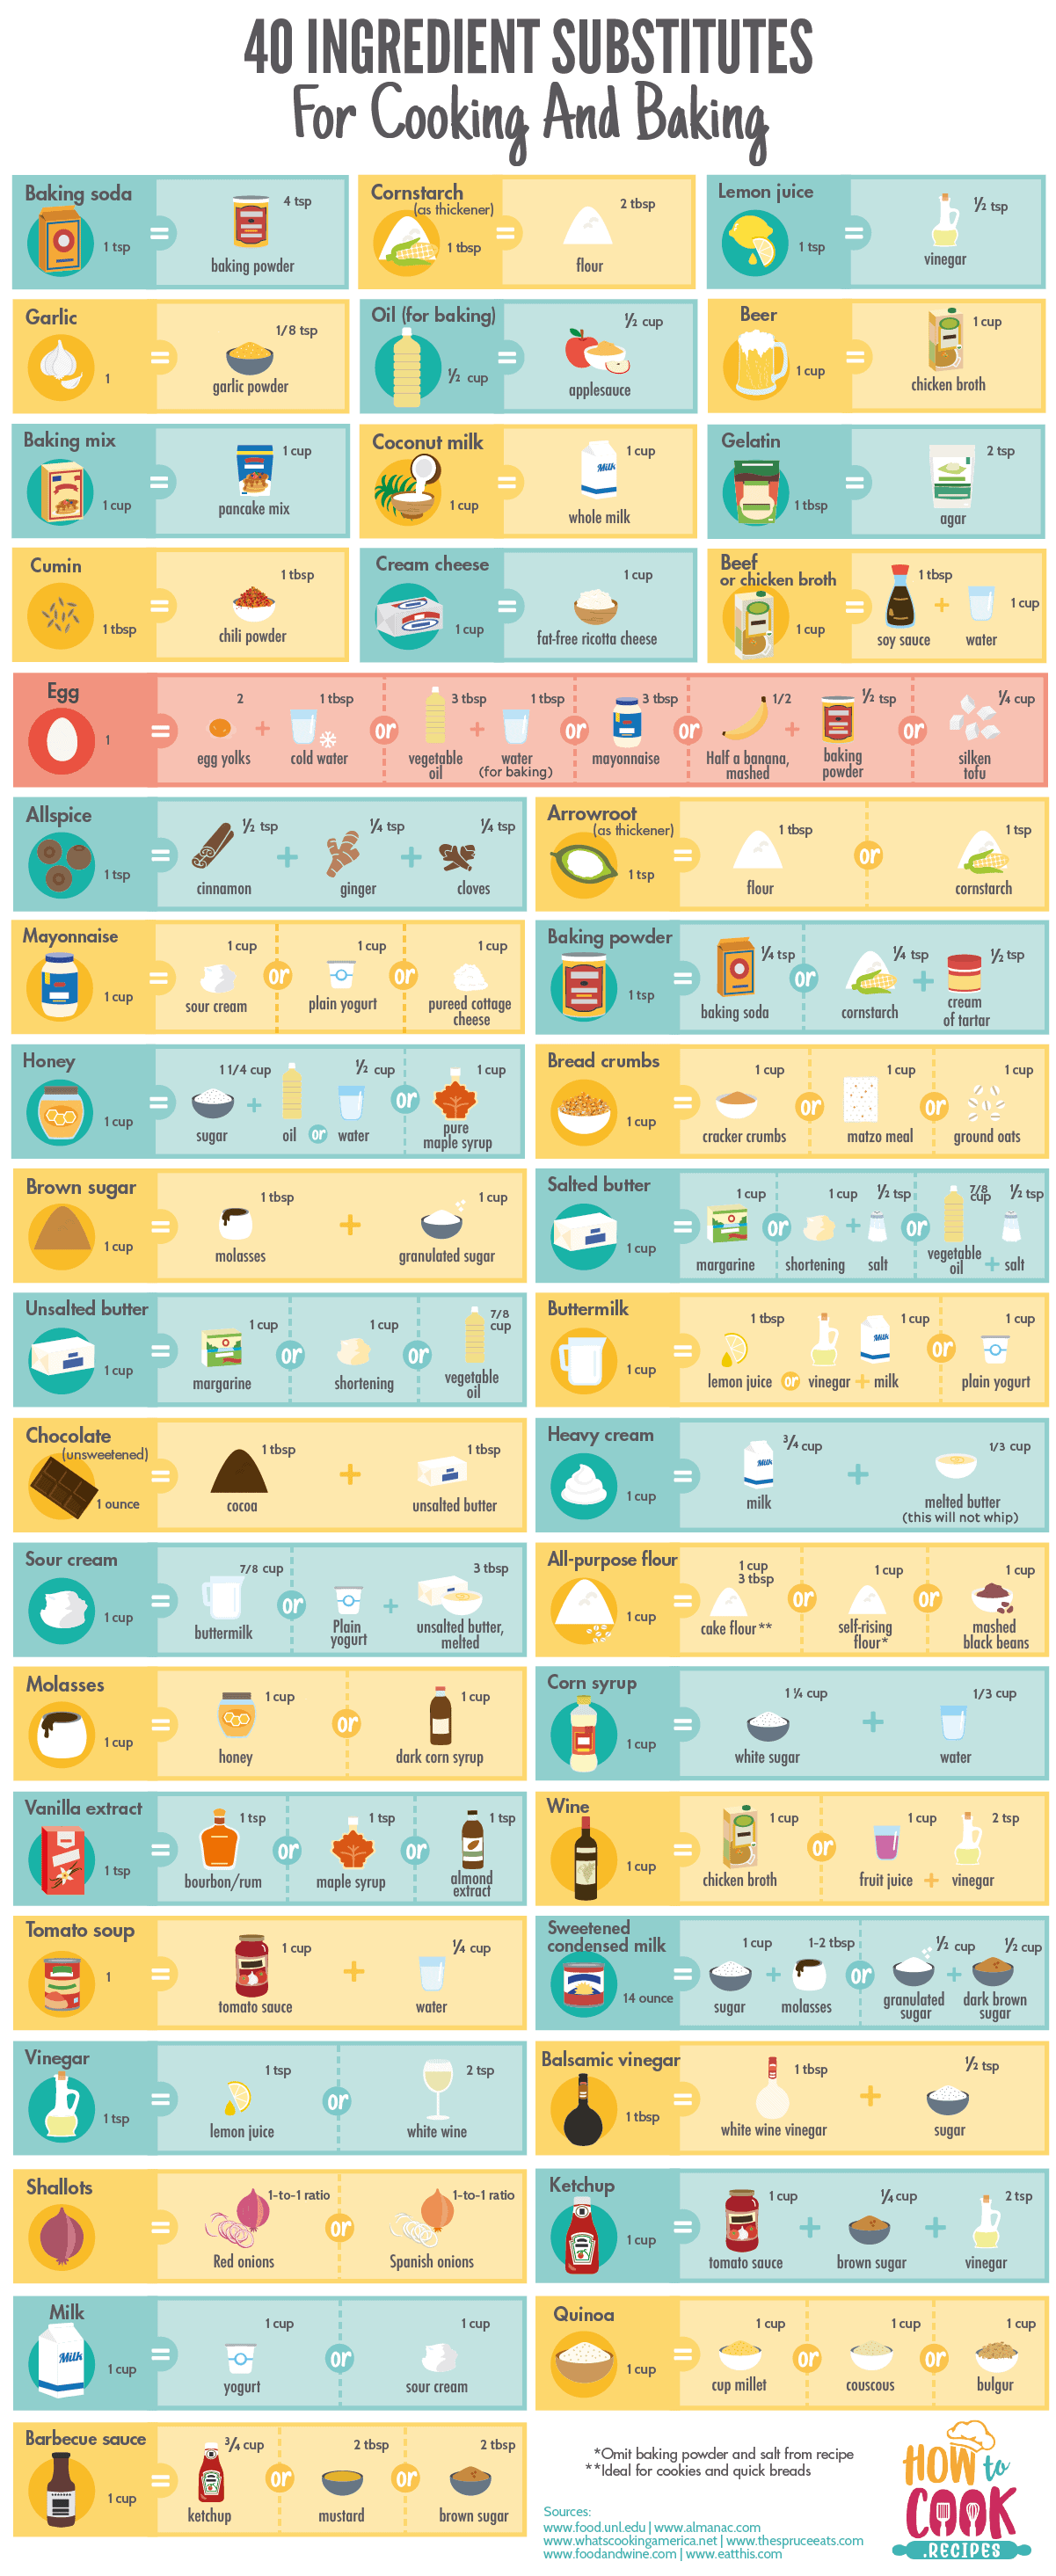 40 Great Ingredient Substitutions for Cooking and Baking